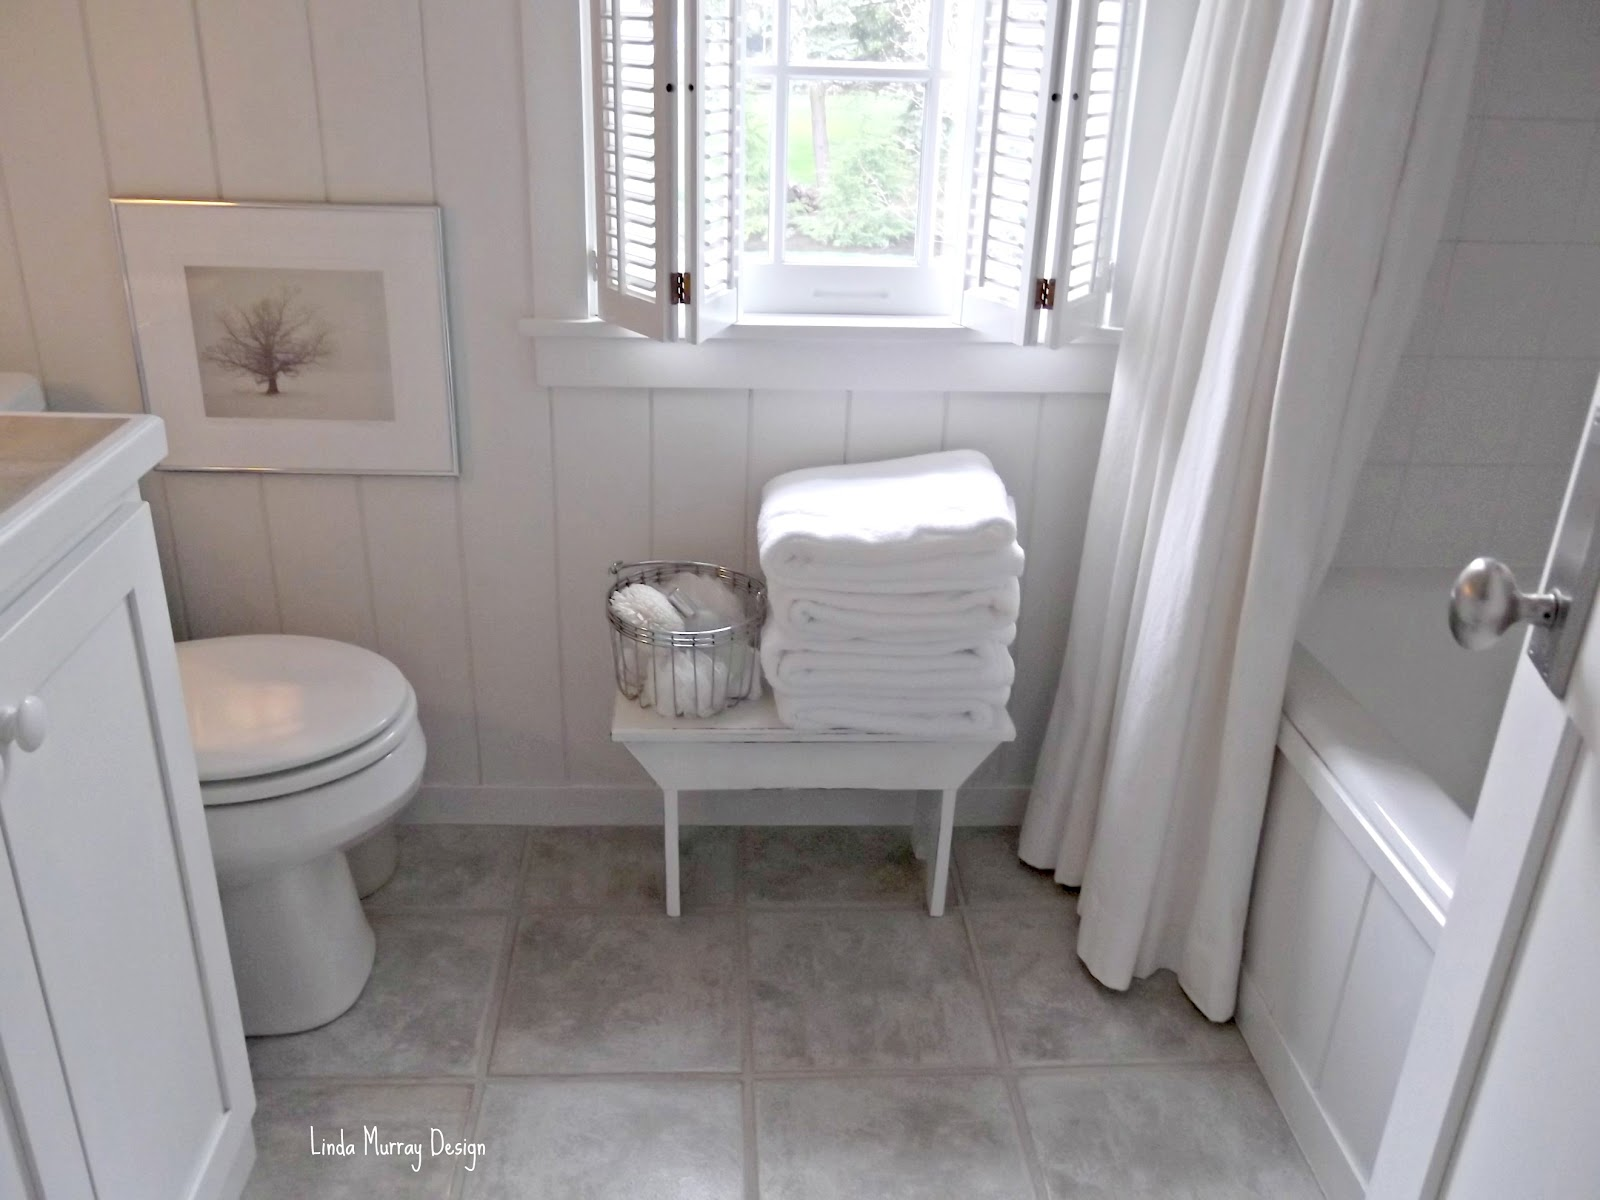 bed bath and beyond bathroom sets awesome design | a1houston